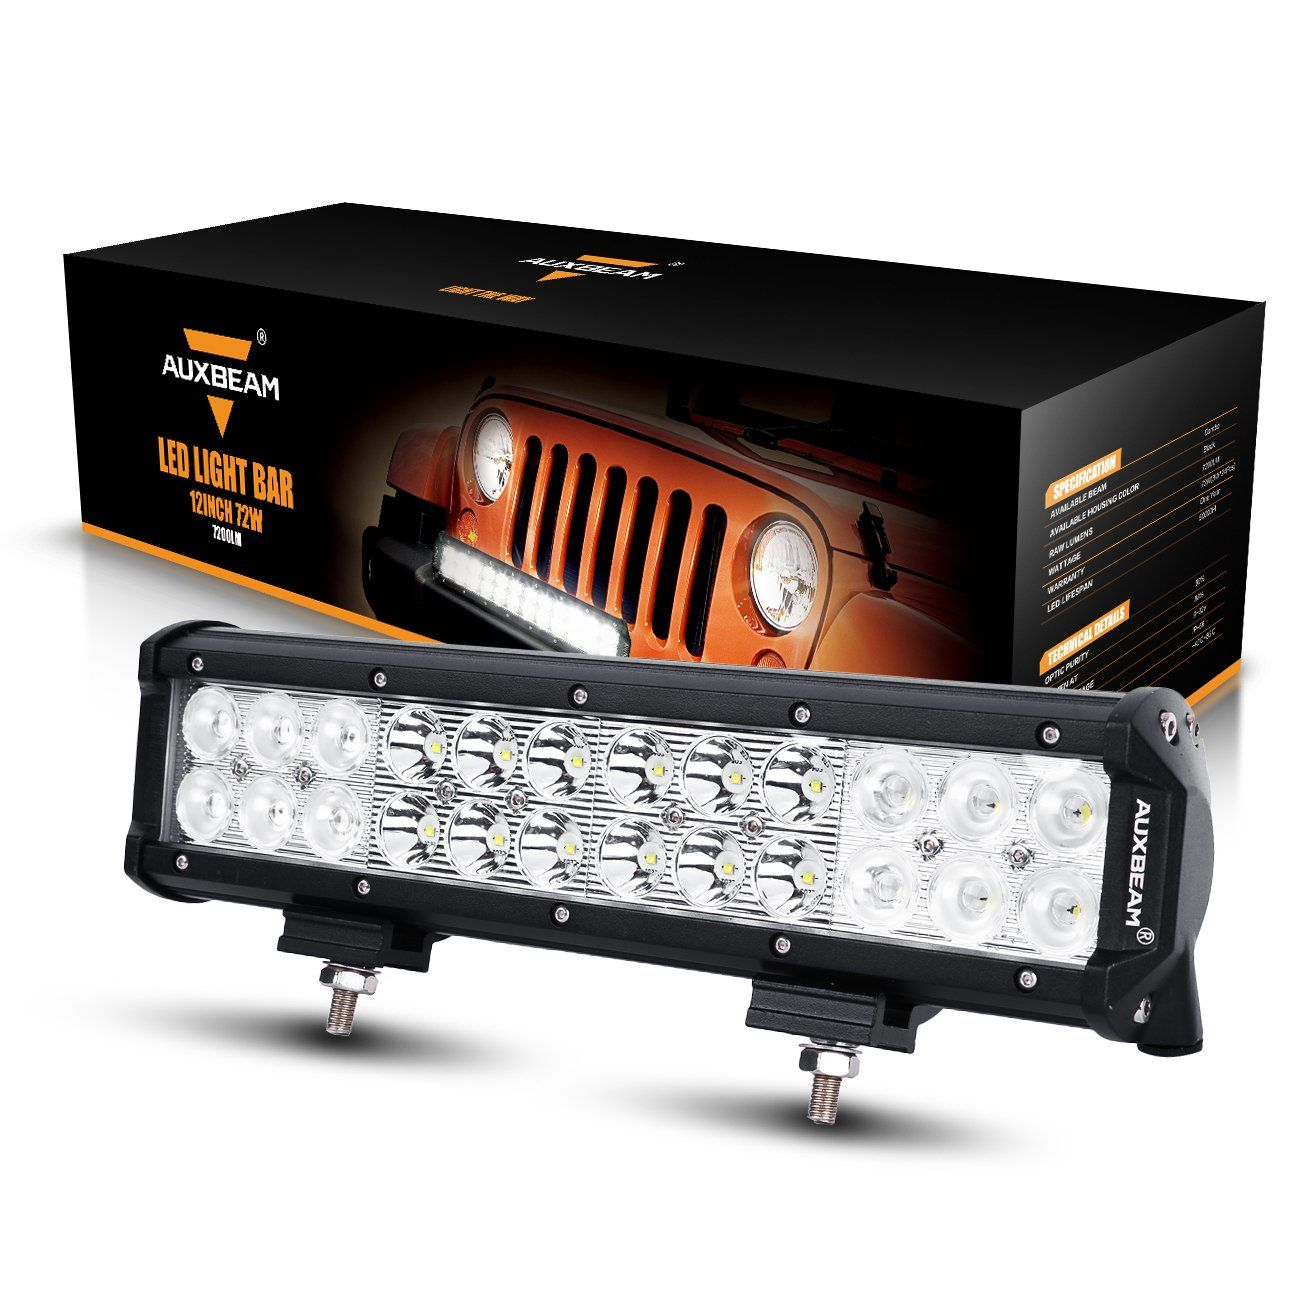 Amazon Com Auxbeam Led Light Bar 12 72w Driving Light 24pcs 3w Combo Beam Waterproof For Off Road Truck Car Mi Bar Lighting Led Light Bars Best Led Light Bar